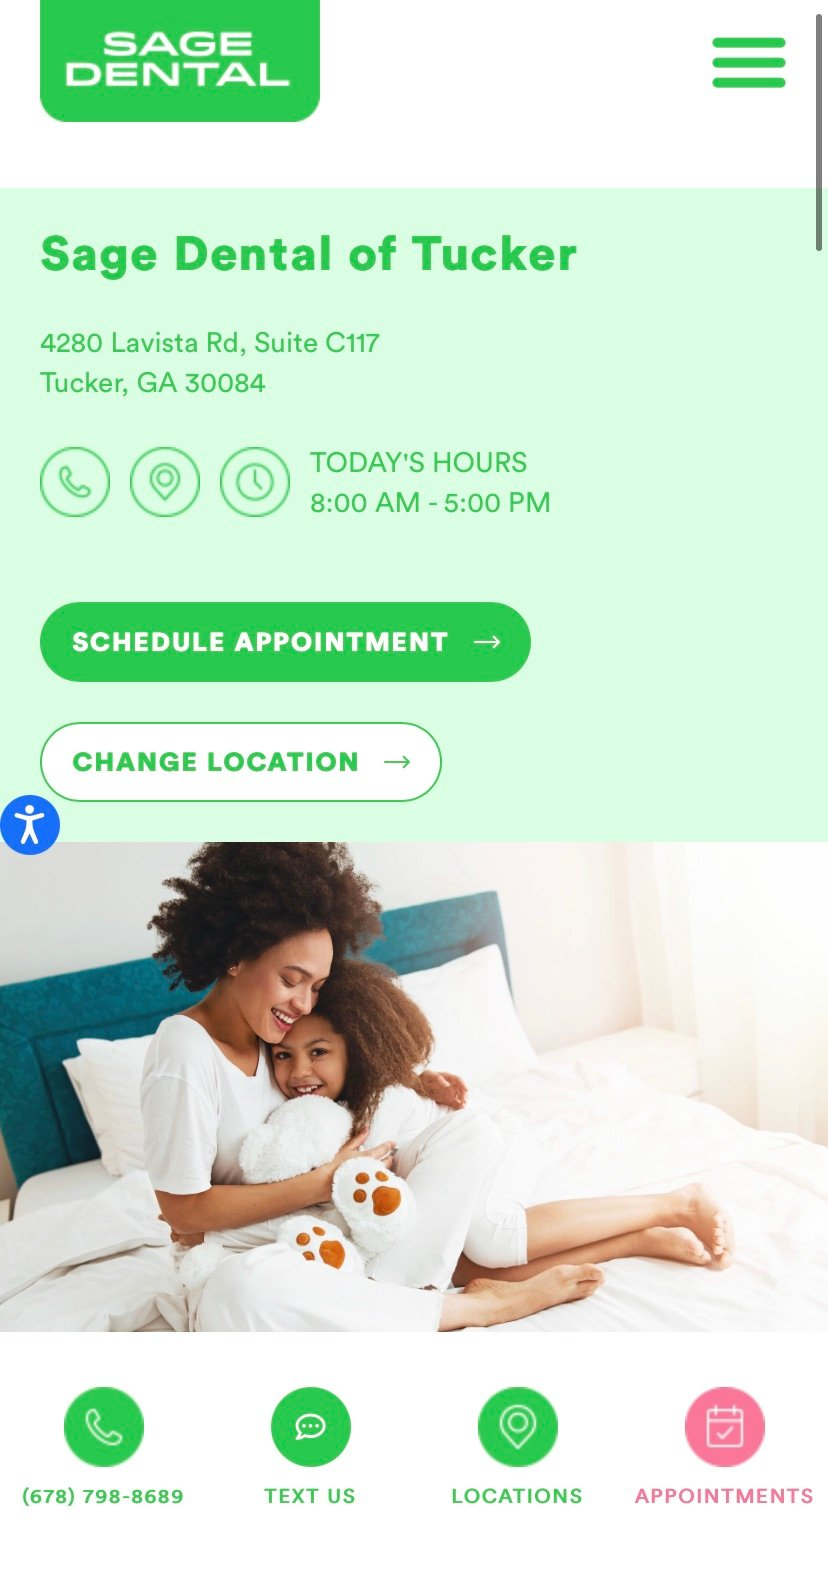 optimize dental pages for mobile experience